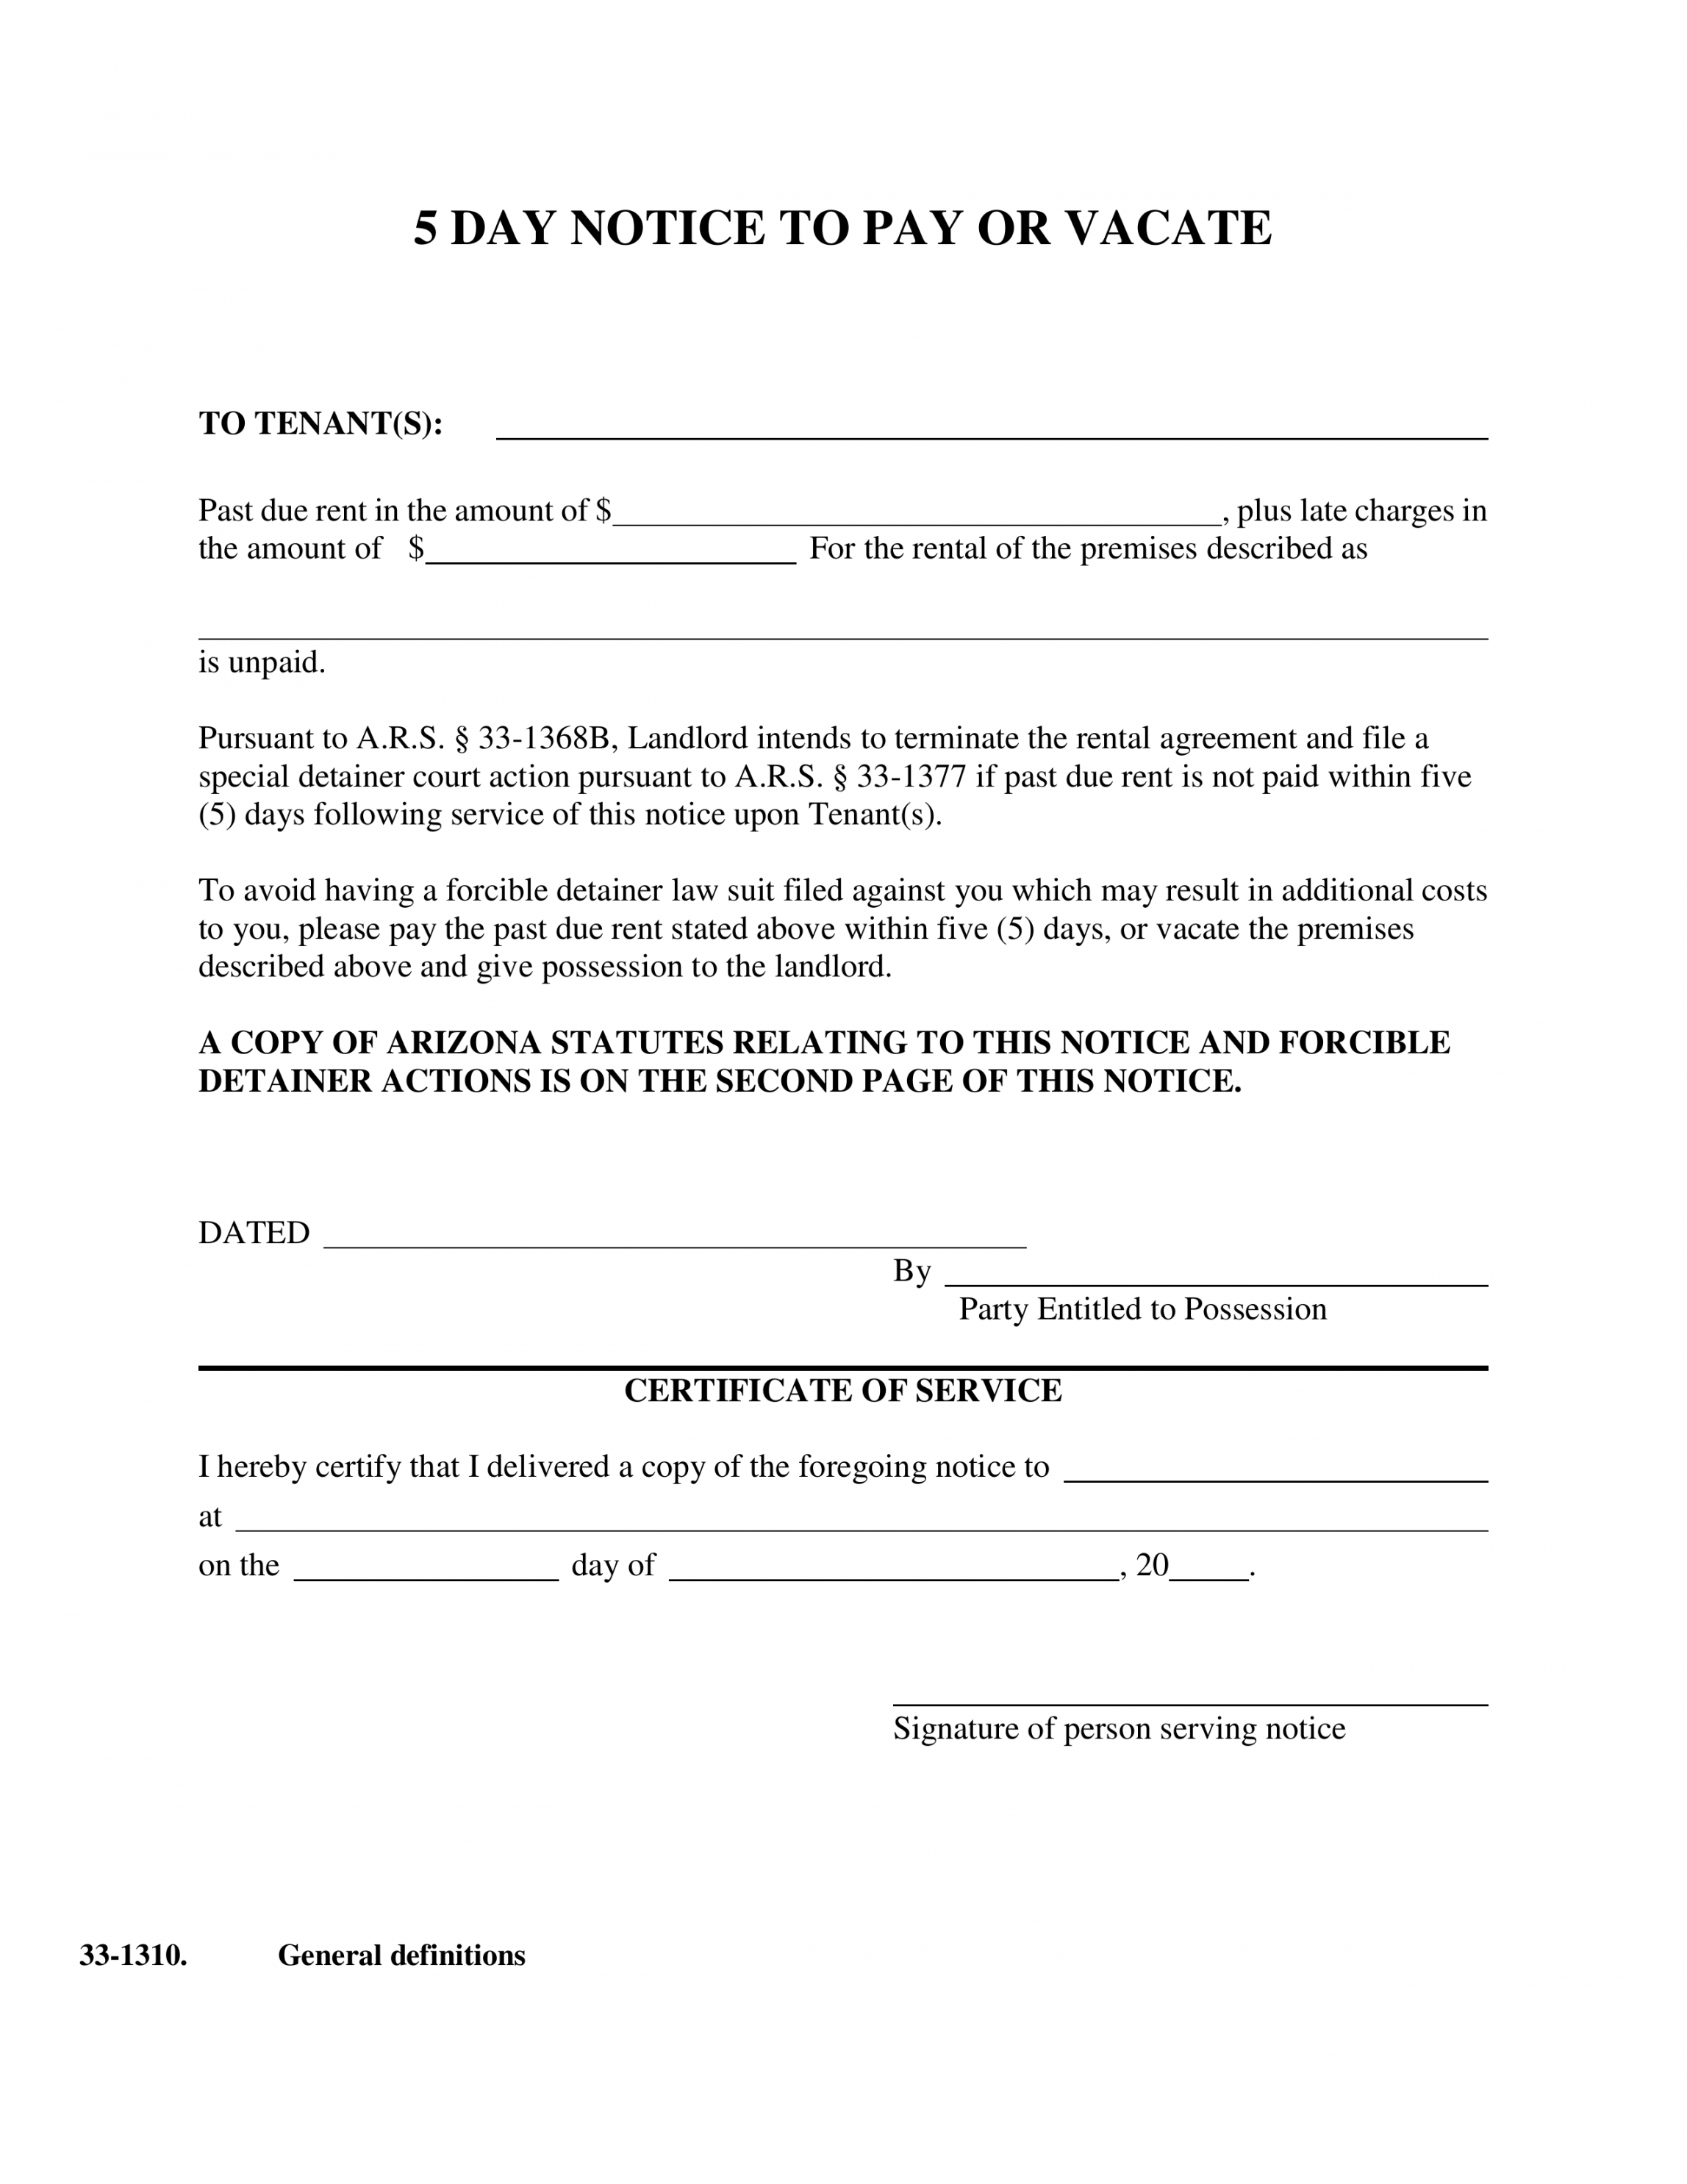 costume arizona 5day notice to pay or vacate form  notice to quit eviction notice arizona template sample